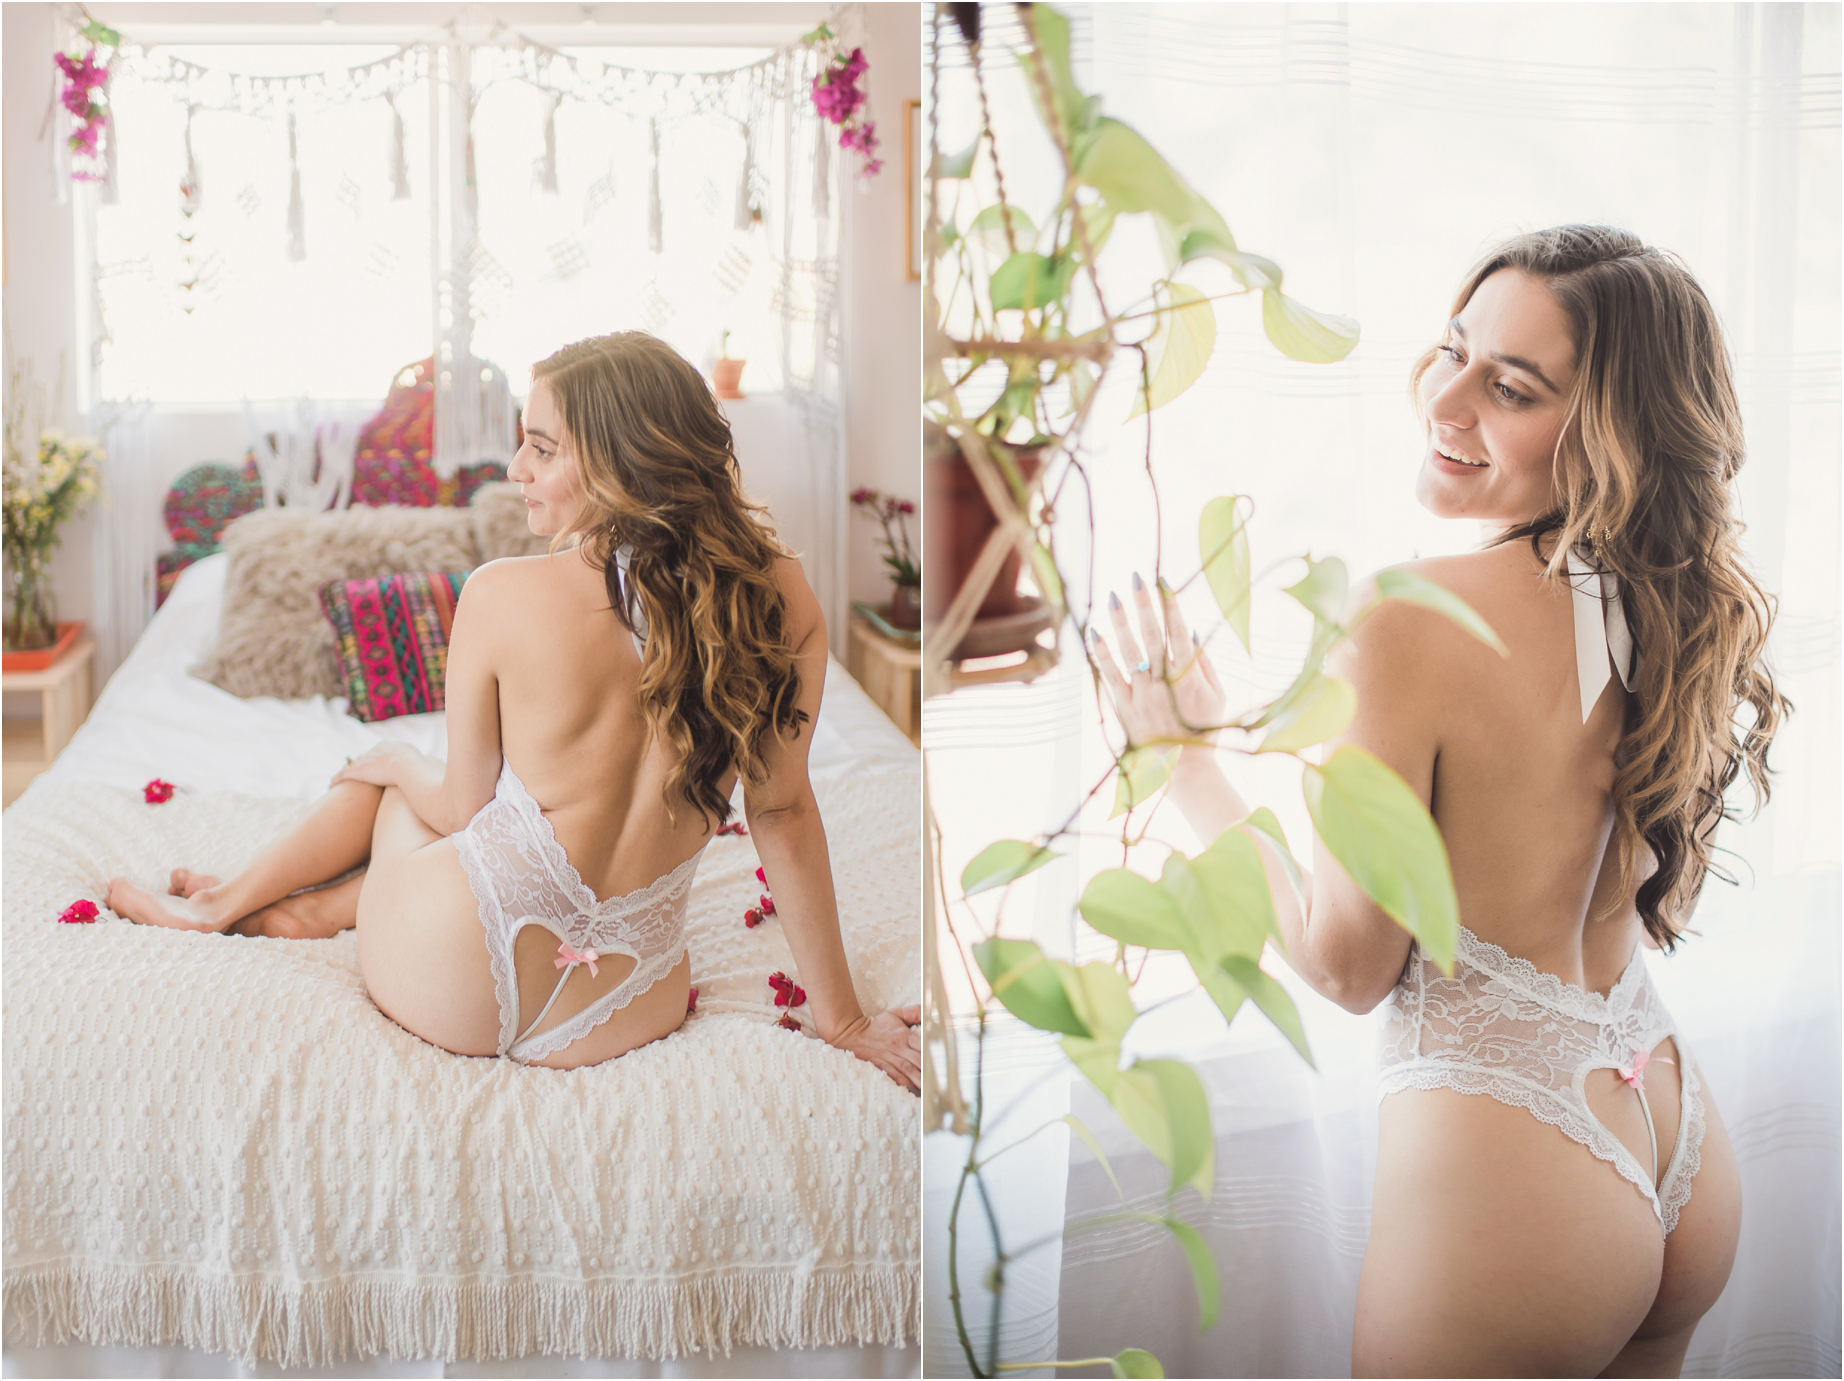 Kendra // Romantic Bridal boudoir photography in Los Angeles